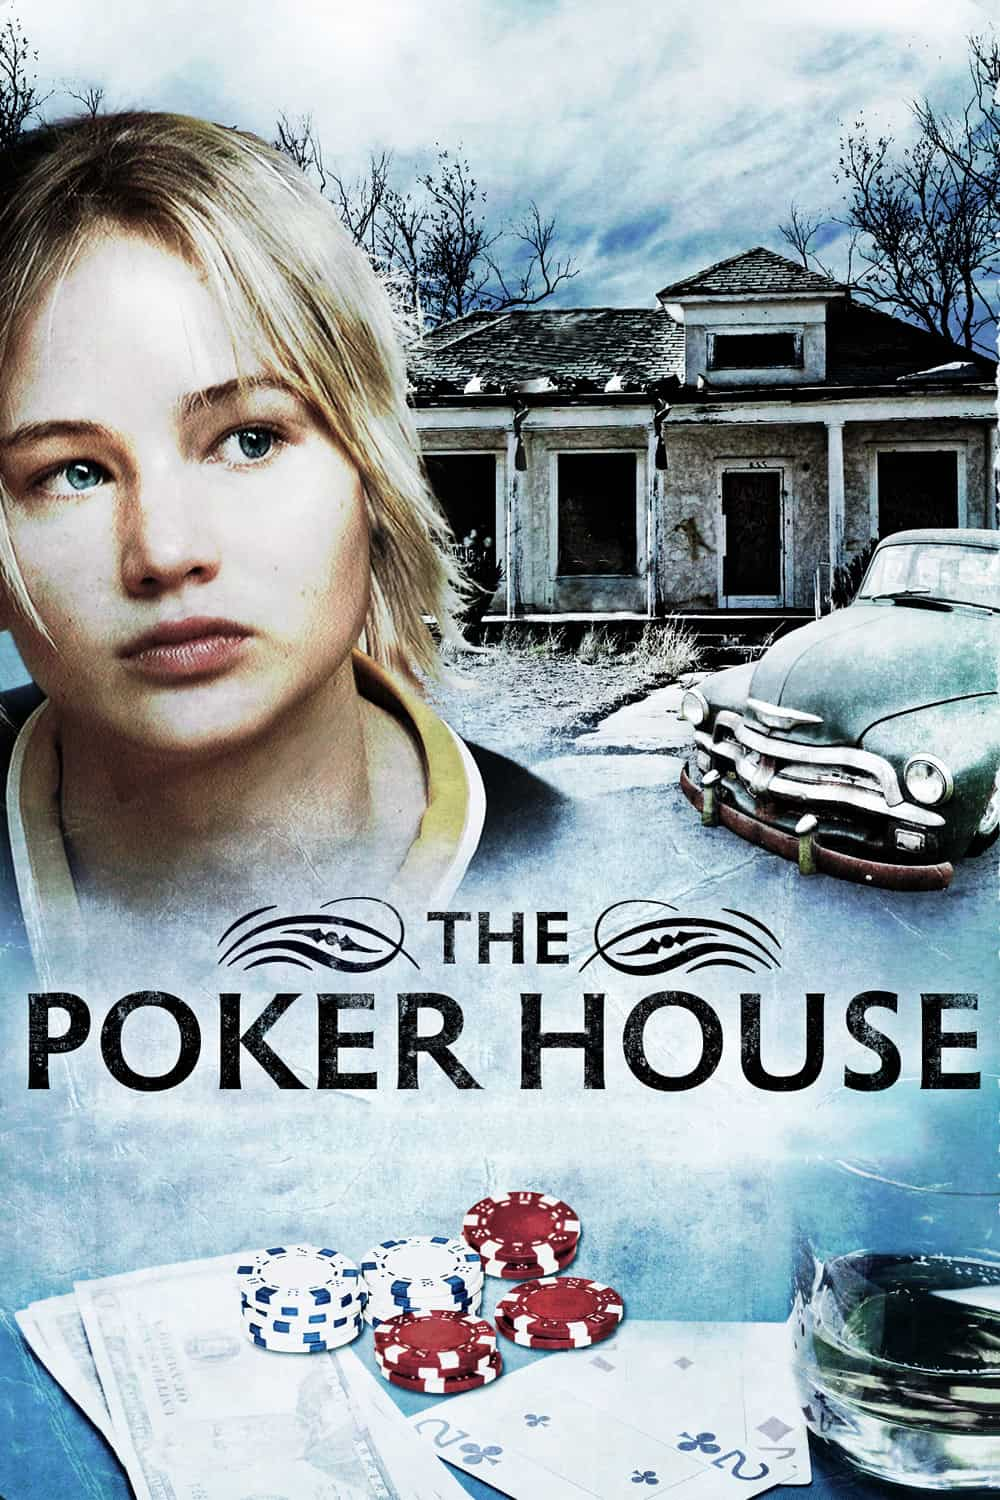 The Poker House, 2008